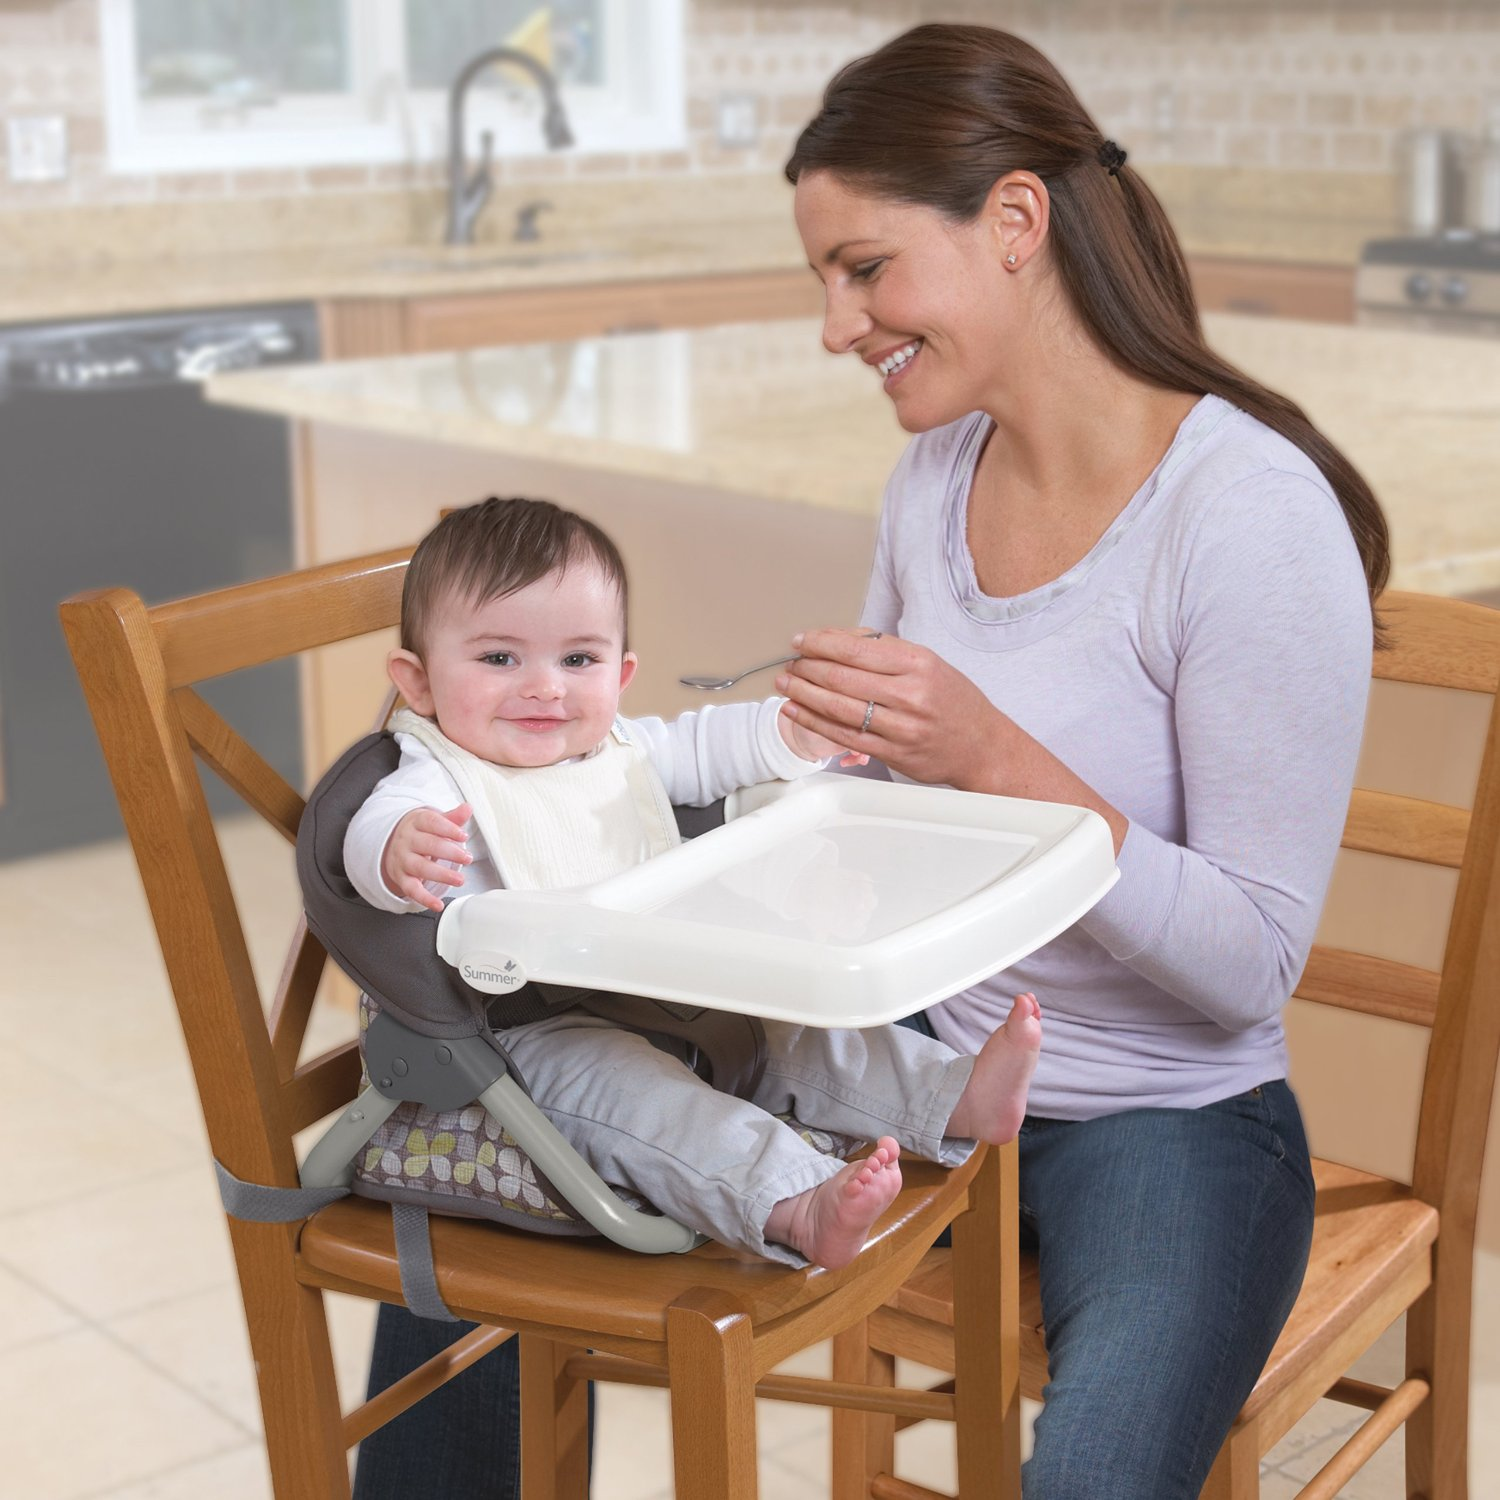 high chair that attaches to counter makes into twin bed baby table a neat idea